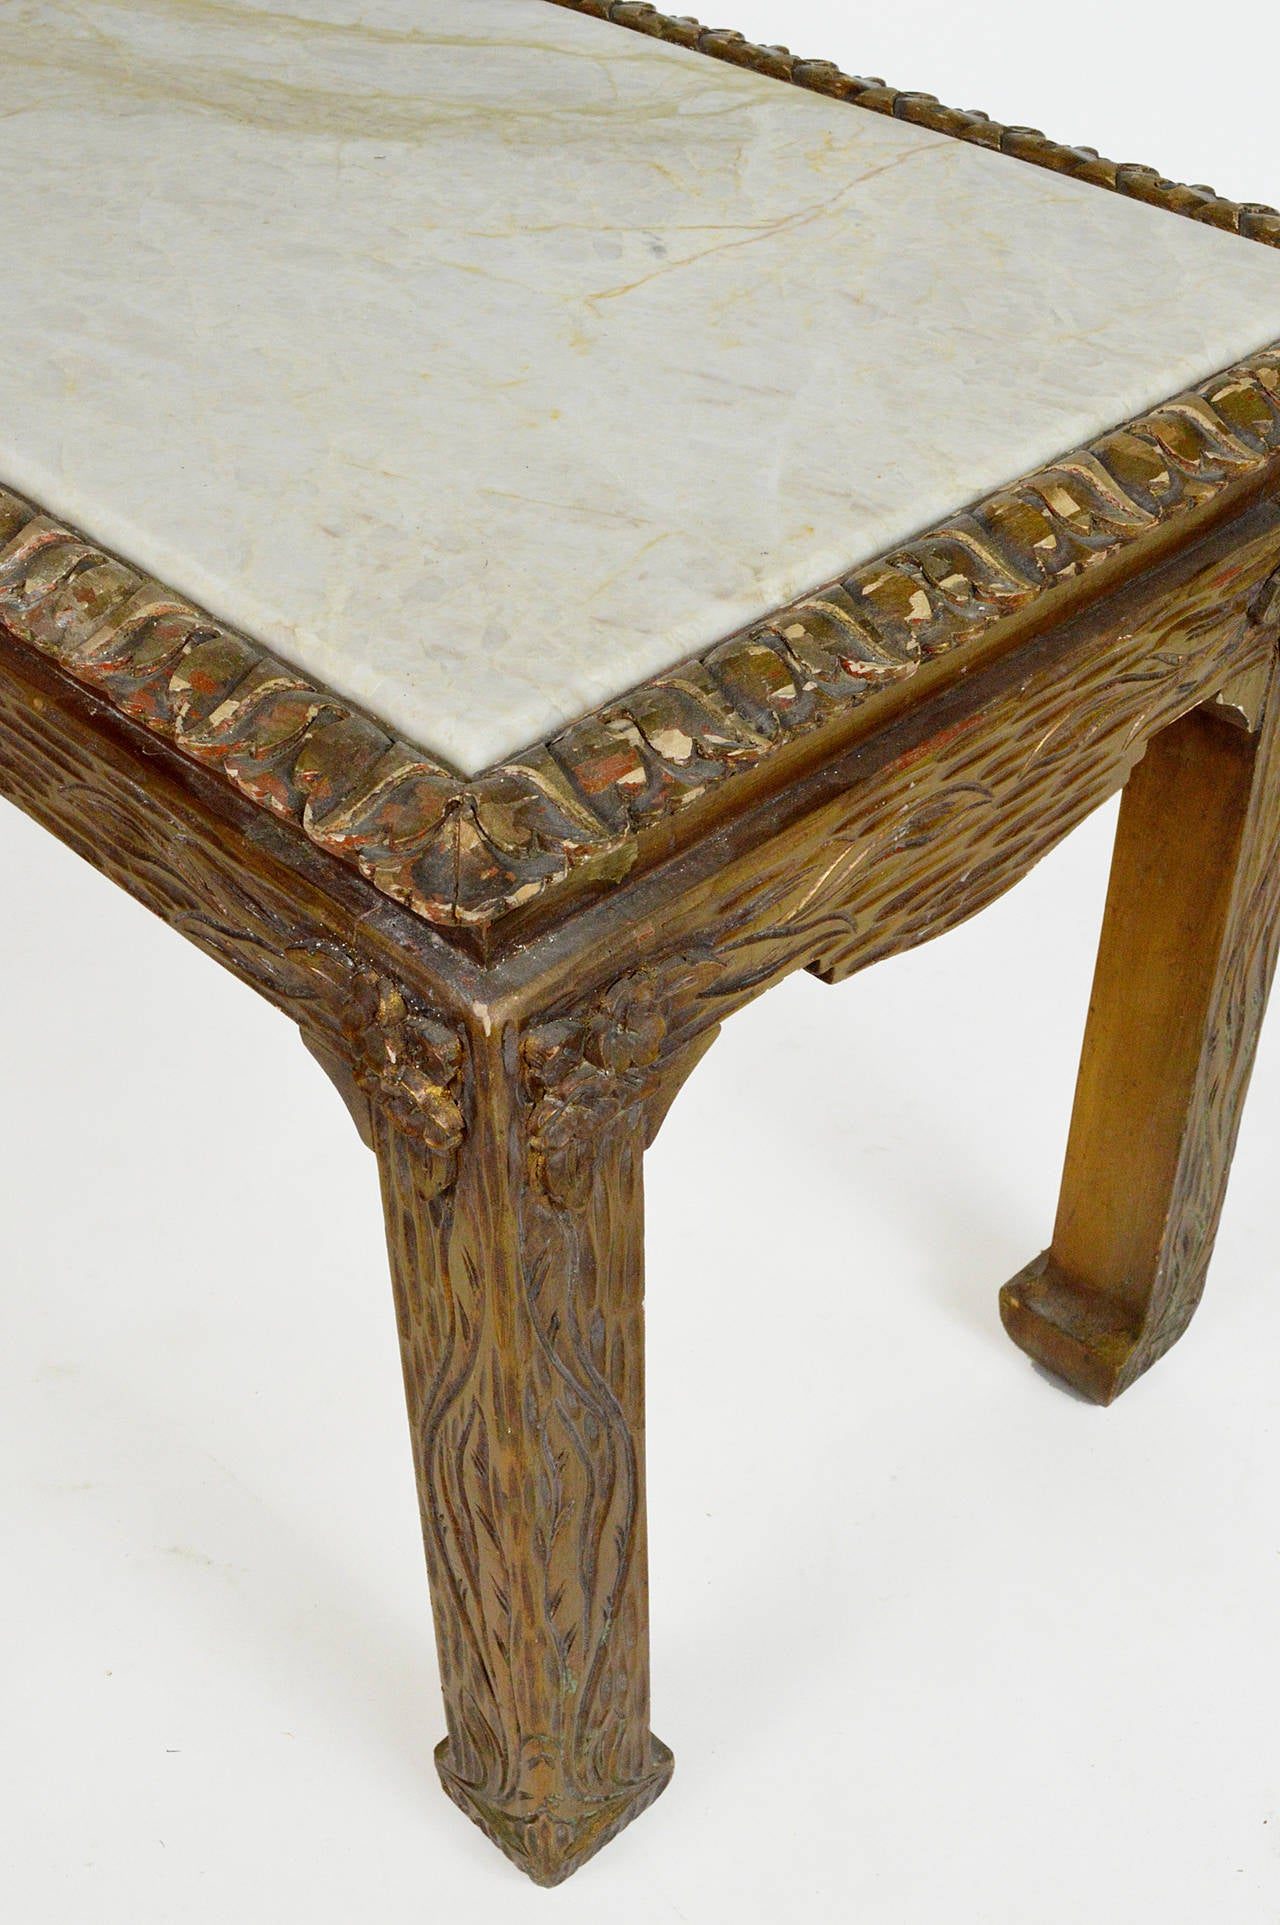 20th Century Chinese Chippendale Carved Wood Accent Table with Inset Marble Top For Sale